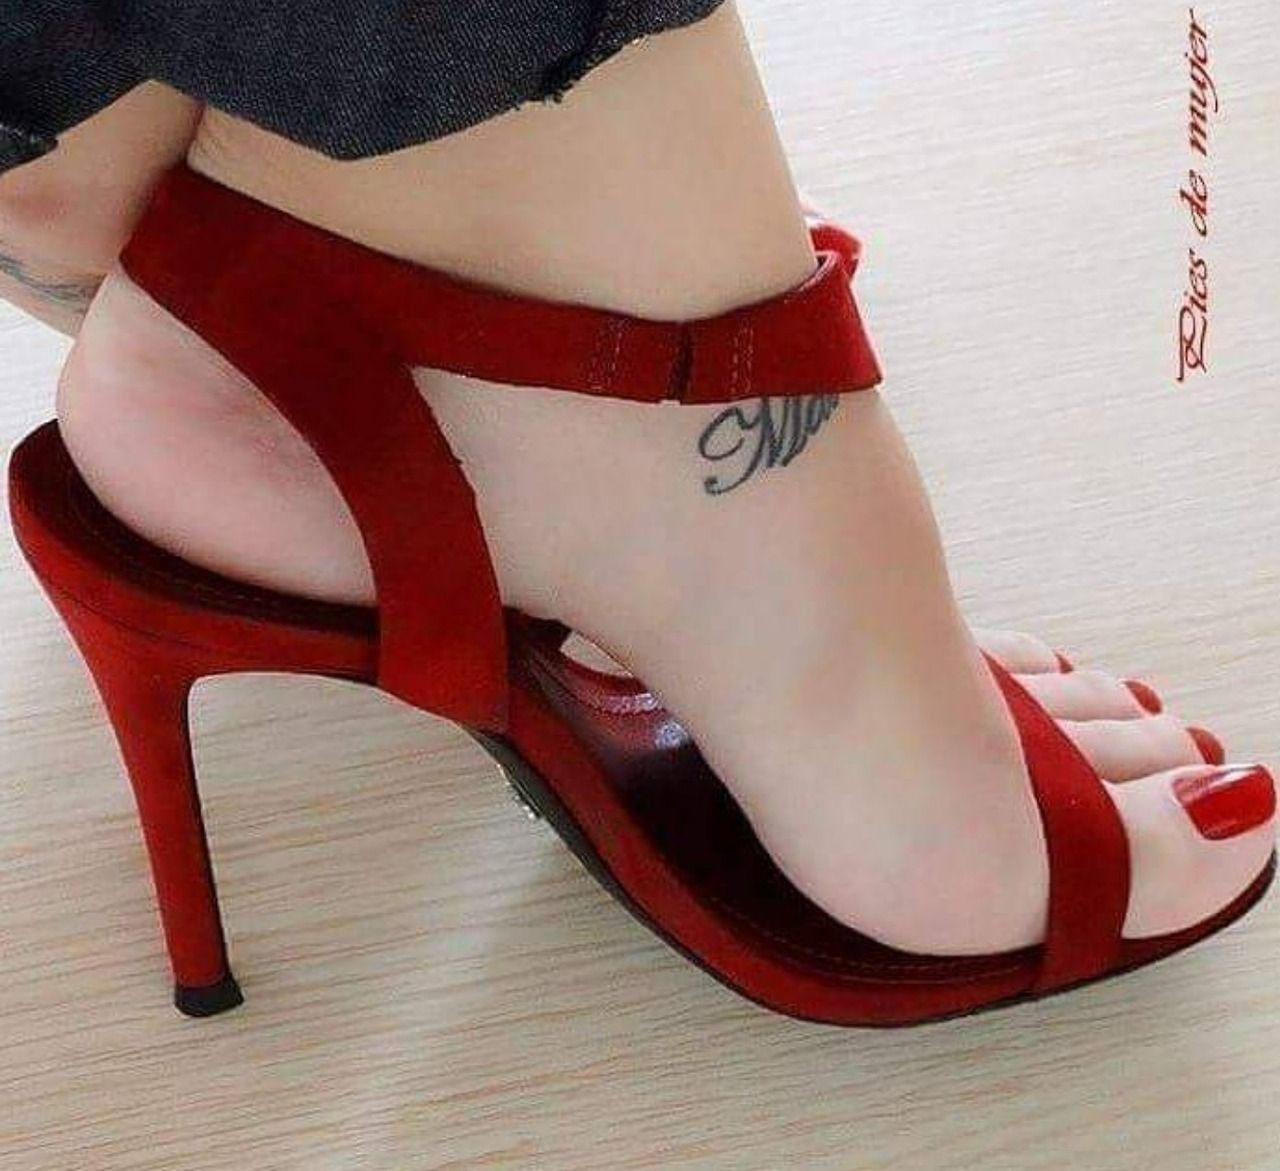 Only sexy feet | Quotes | Pinterest